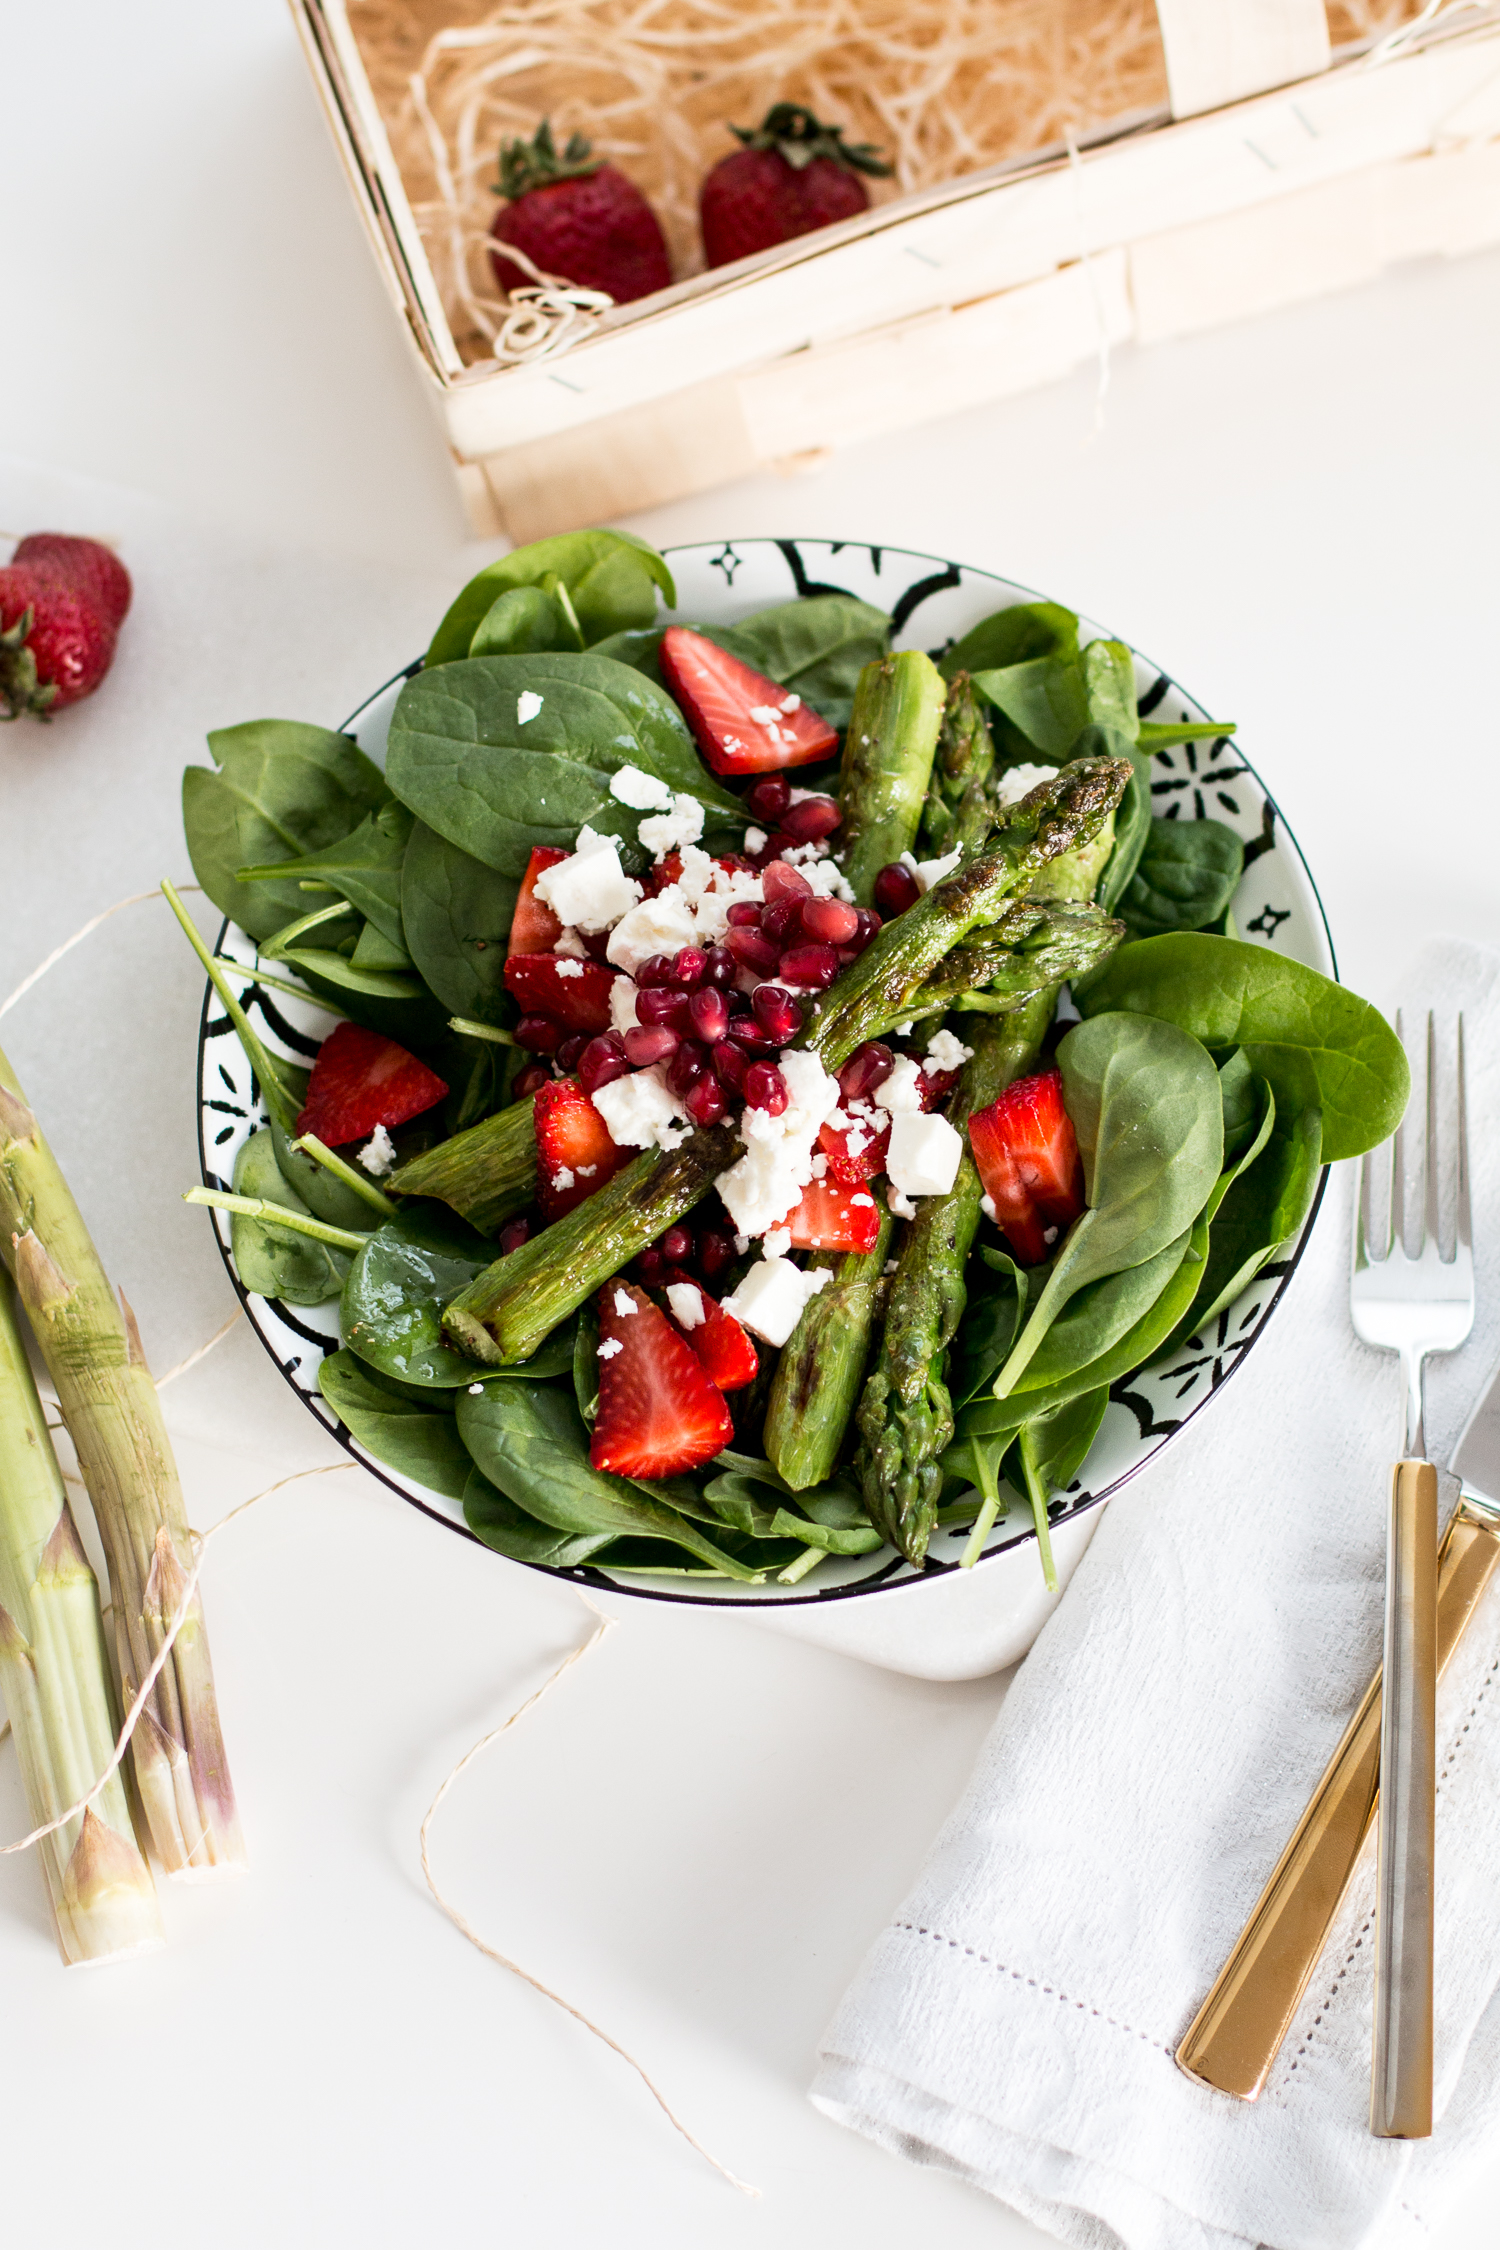 RECIPE: asparagus & strawberry salad